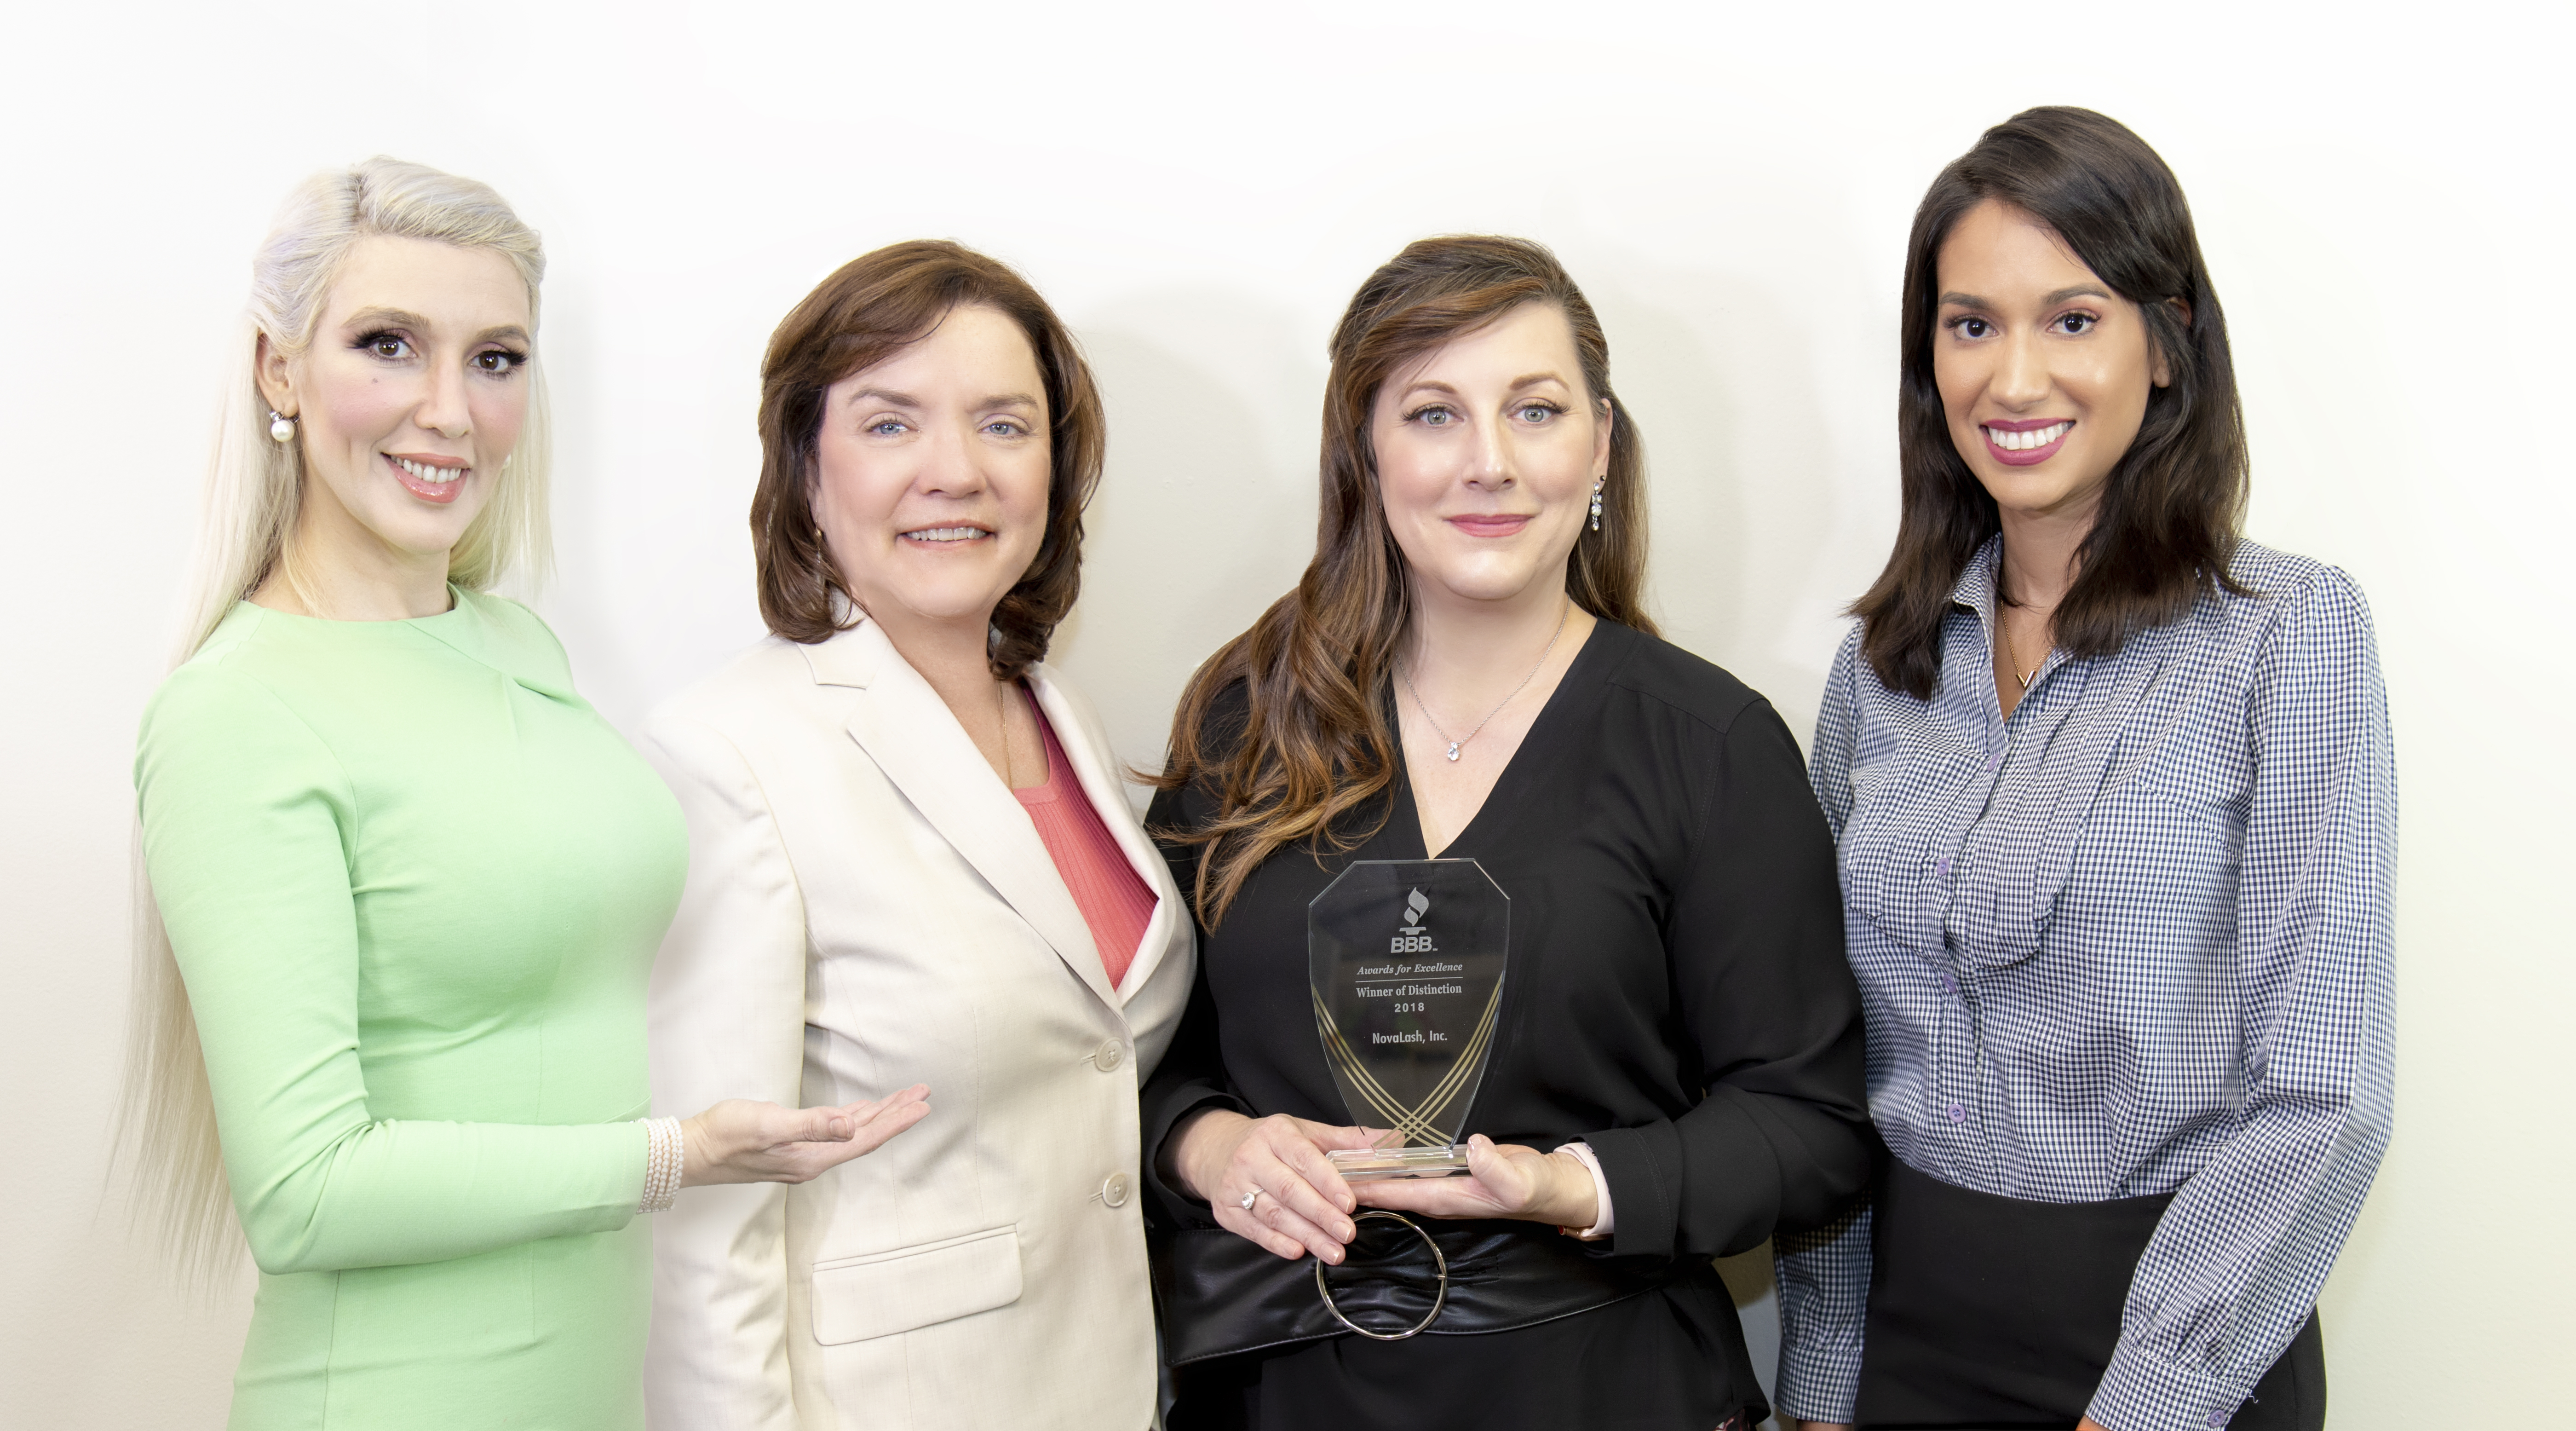 Team NovaLash accepts The Better Business Bureau's Distinction Award, celebrating a commitment to excellence and quality. Left to right: Sophy Merszei, CEO, NovaLash, Beth Fetzer, NovaLash COO, Cami Mullins, NovaLash Sales Manager, Vanessa Max, NovaLash Project Coordinator.